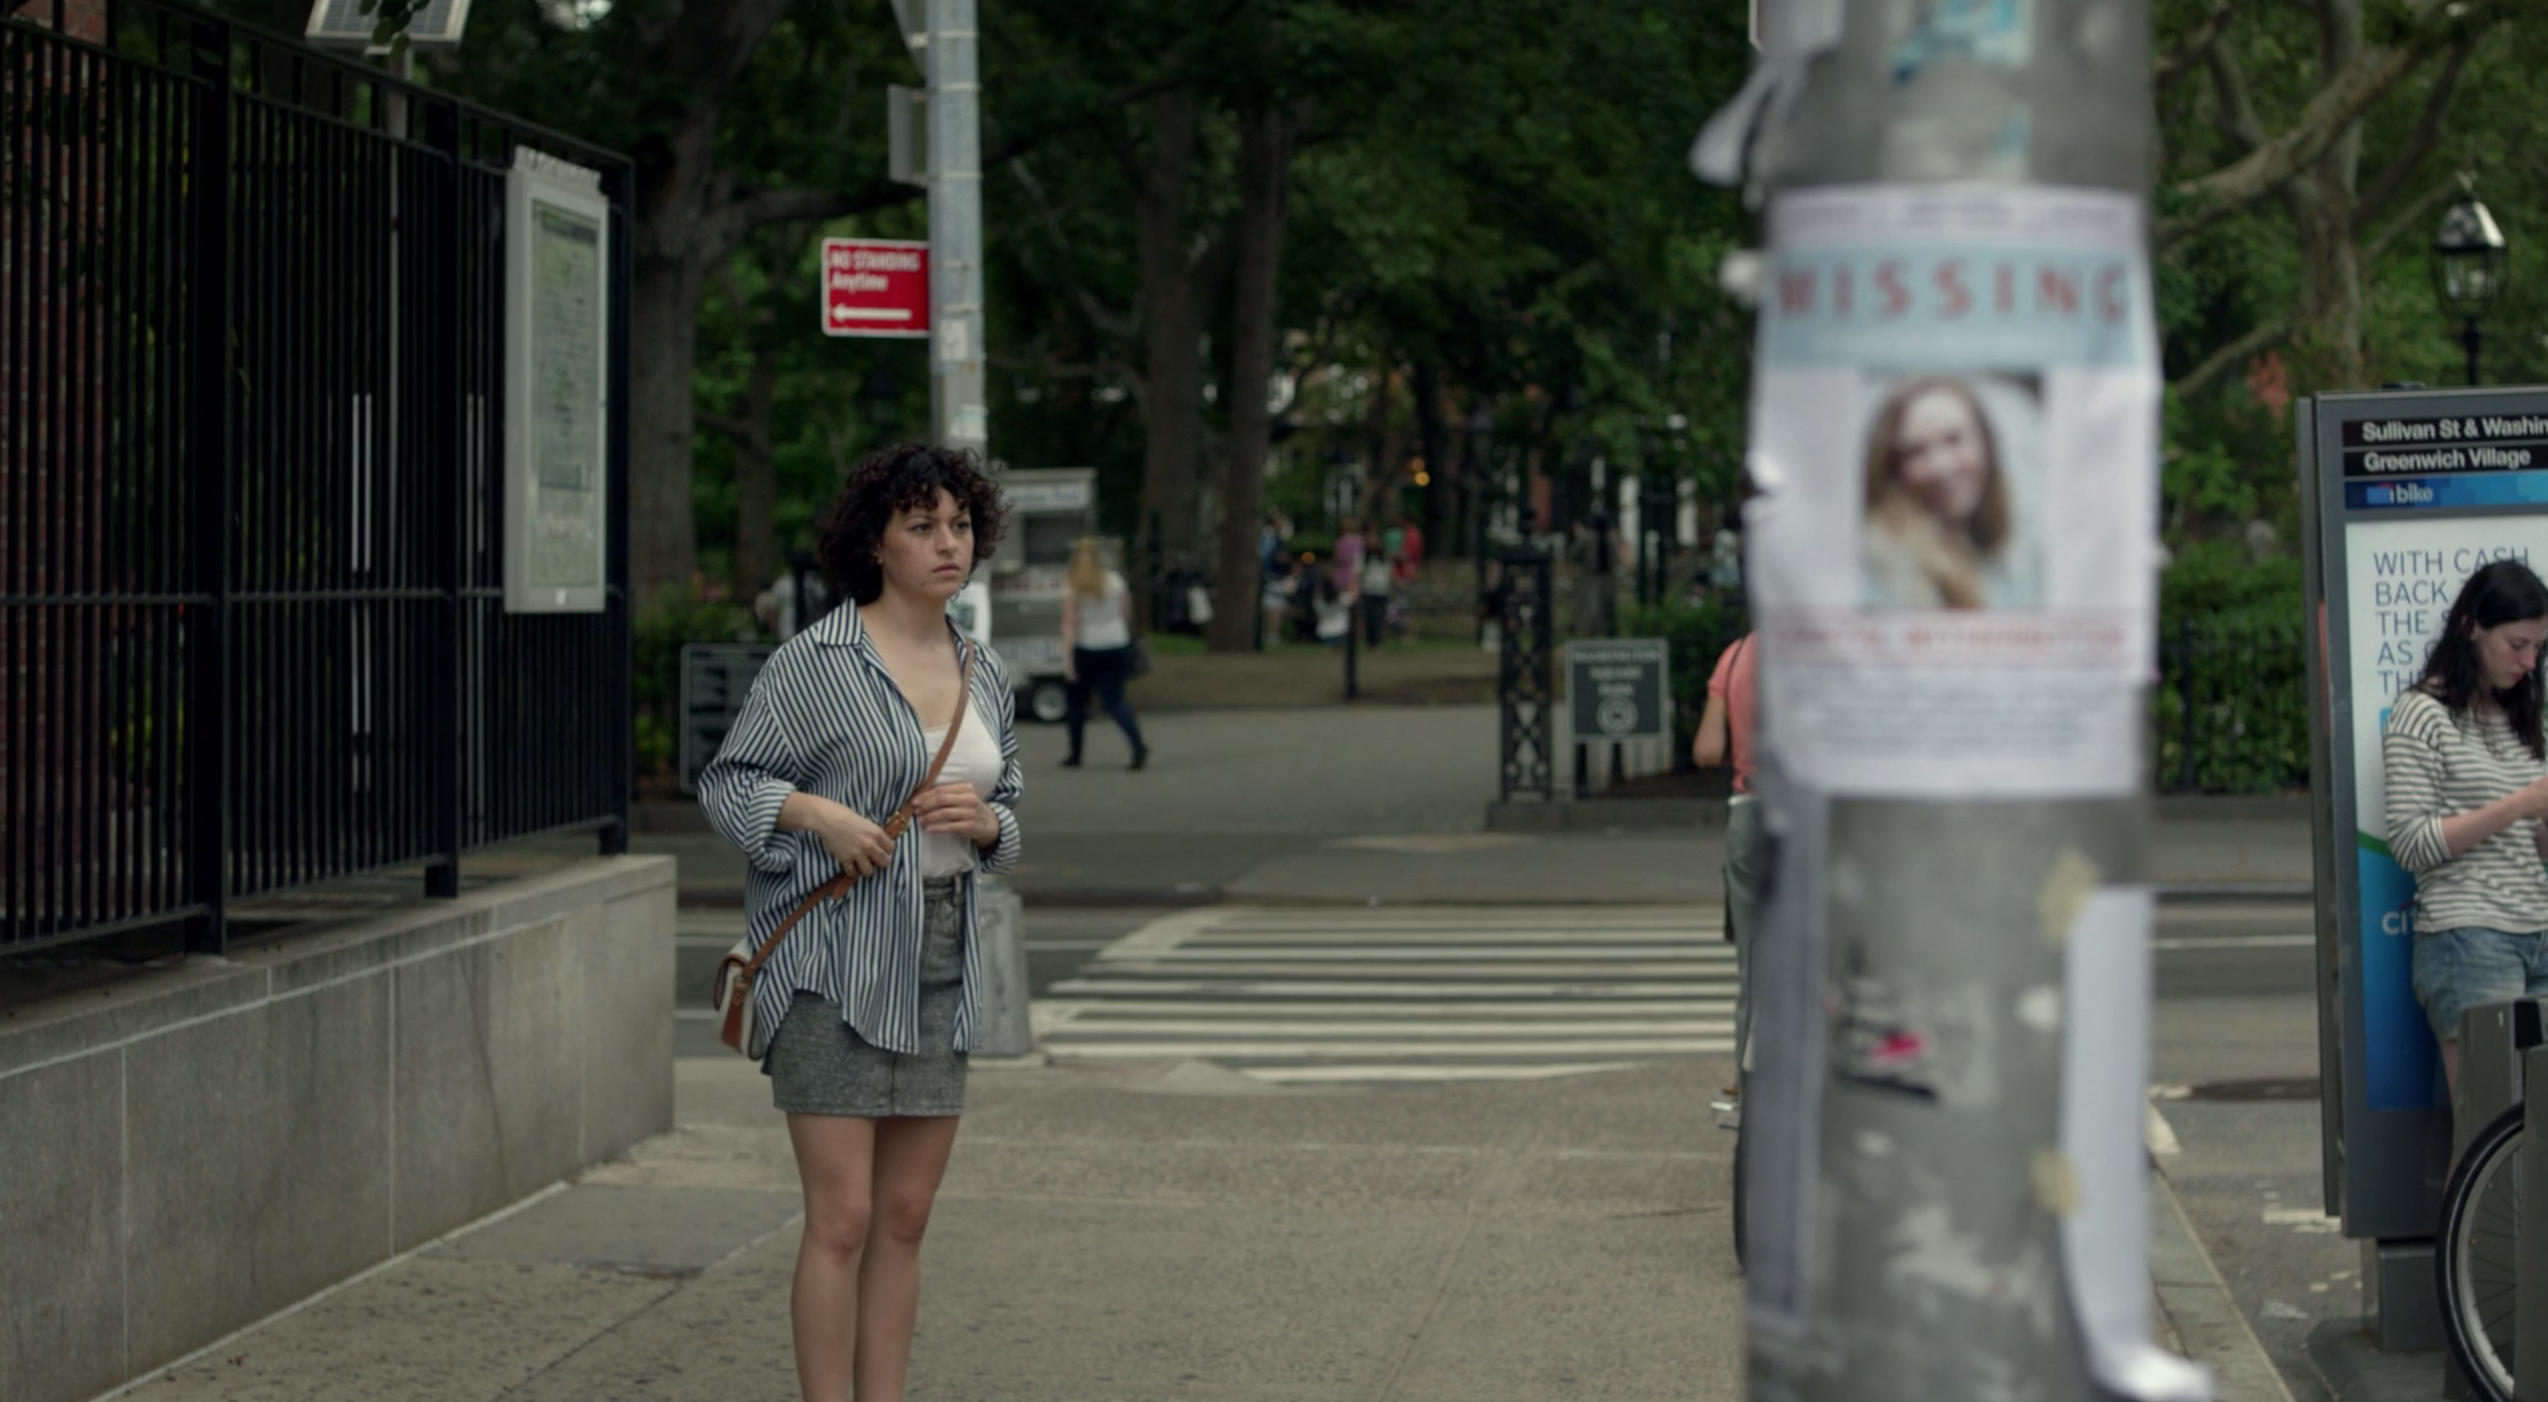 Screenshot of Alia standing in the streets near a missing persons poster